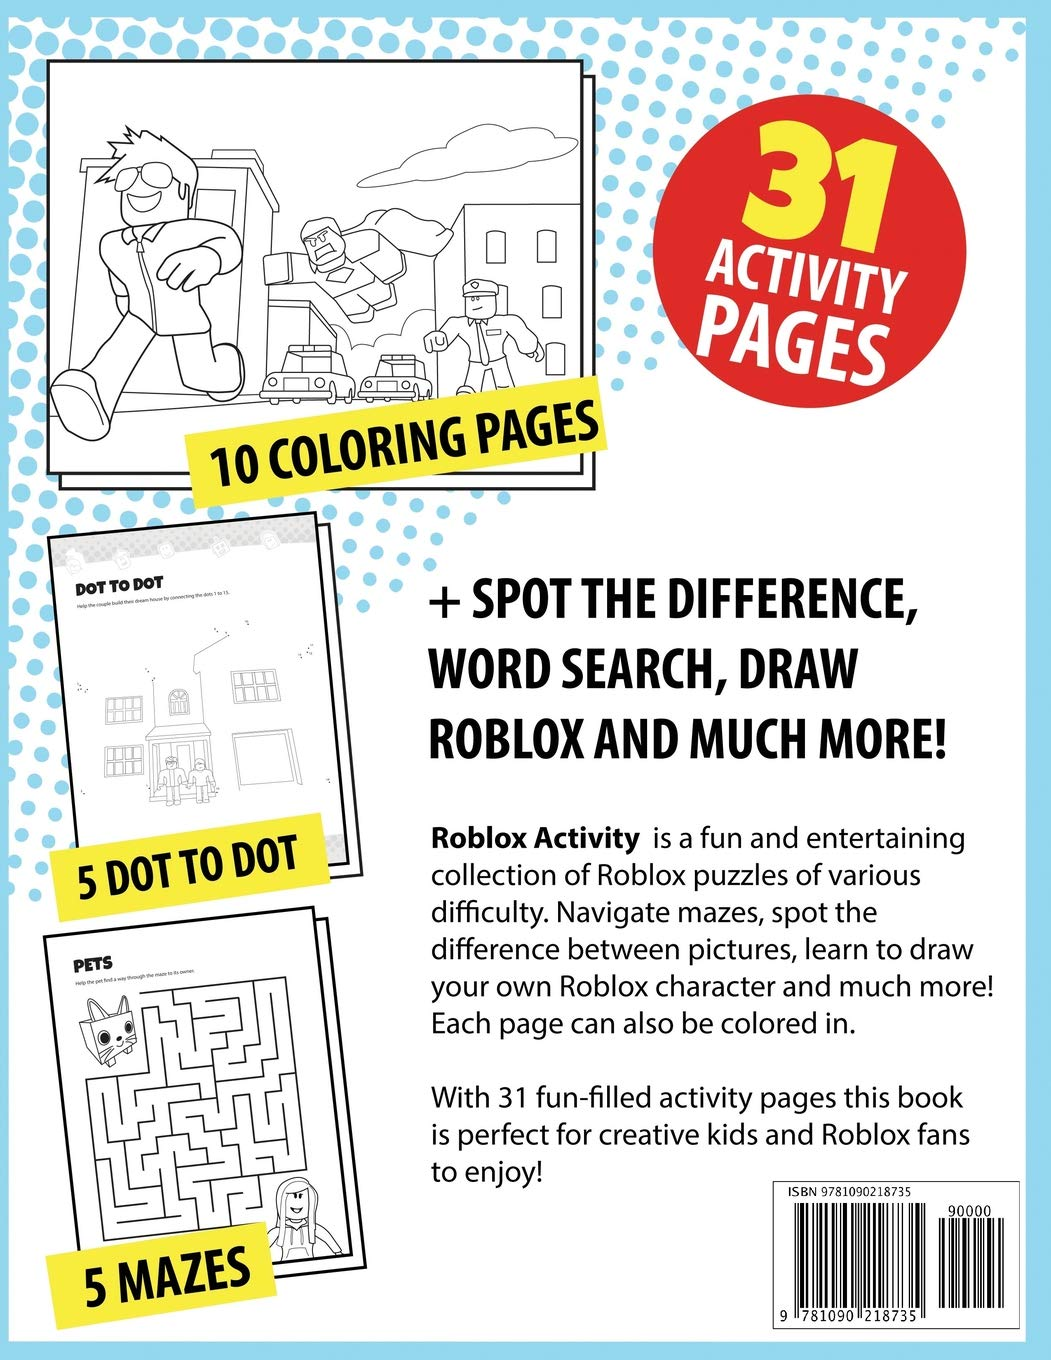 Roblox Activity: Coloring pages, mazes, dot to dot, spot the